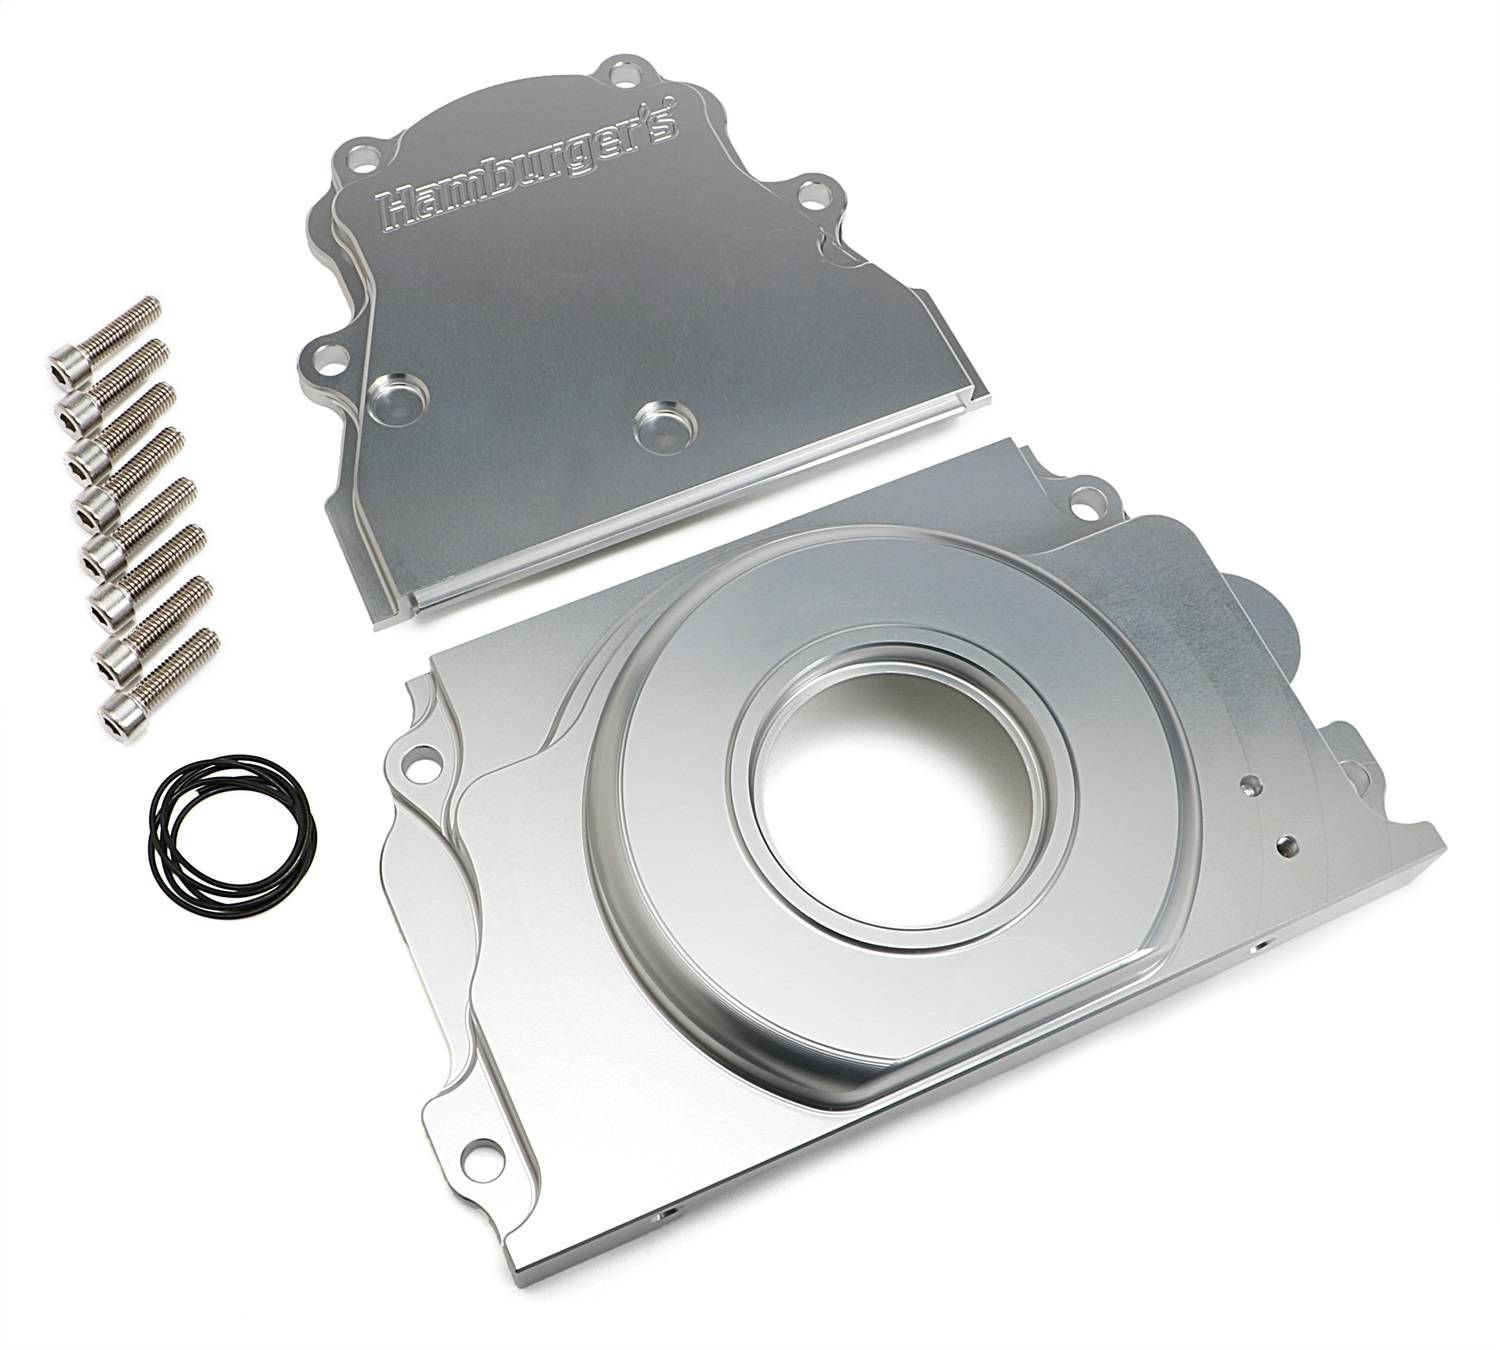 Ls1 Engine Transmission Package: Timing Chain Cover Trans-Dapt Performance Products 1104